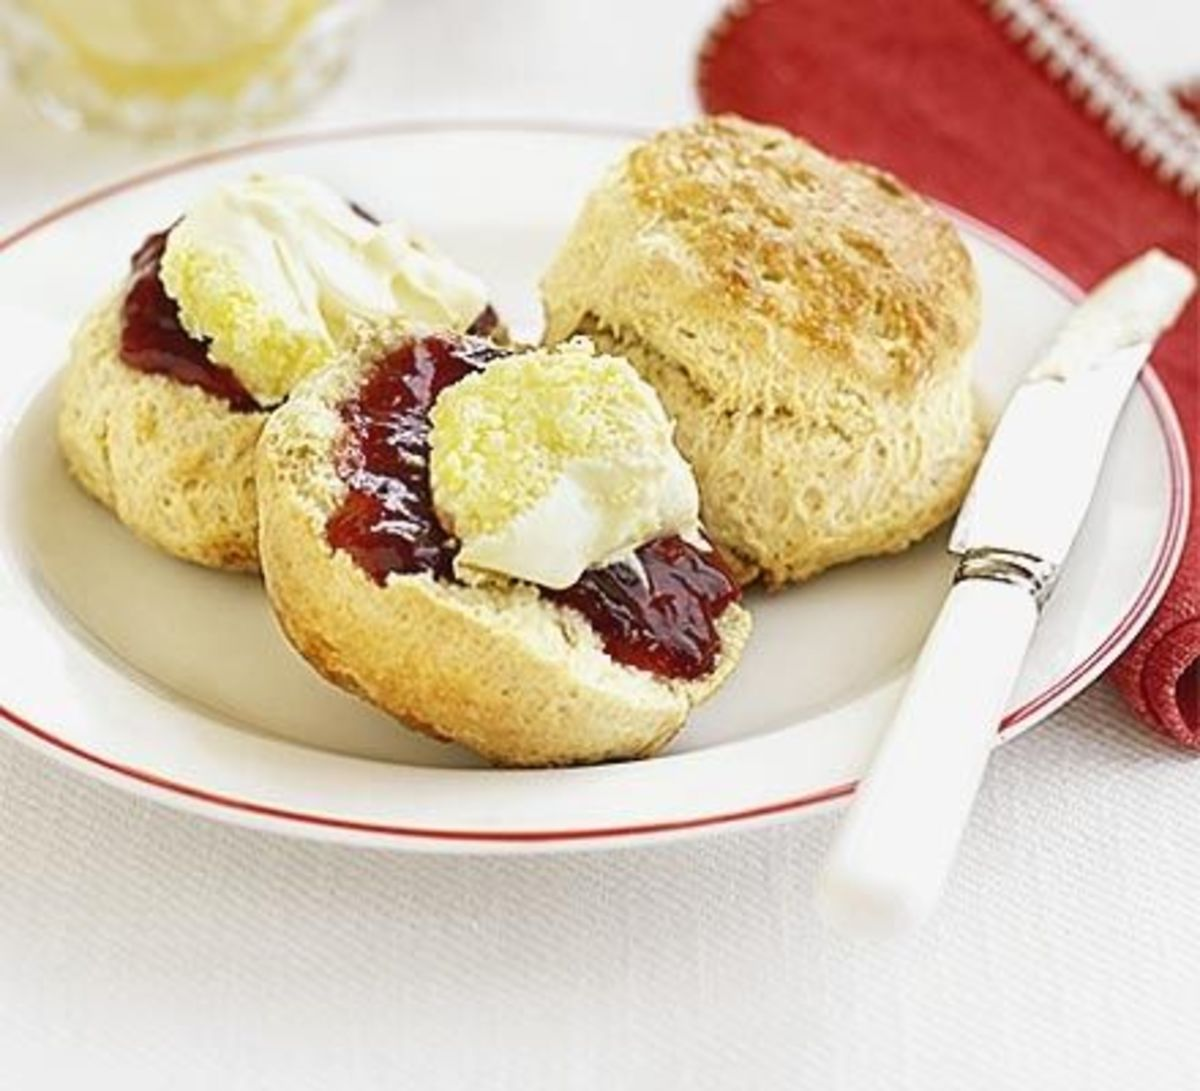 Scones Recipe By Jane Hornby  Source: http://www.bbcgoodfood.com/recipes/4622/classic-scones-with-jam-and-clotted-cream